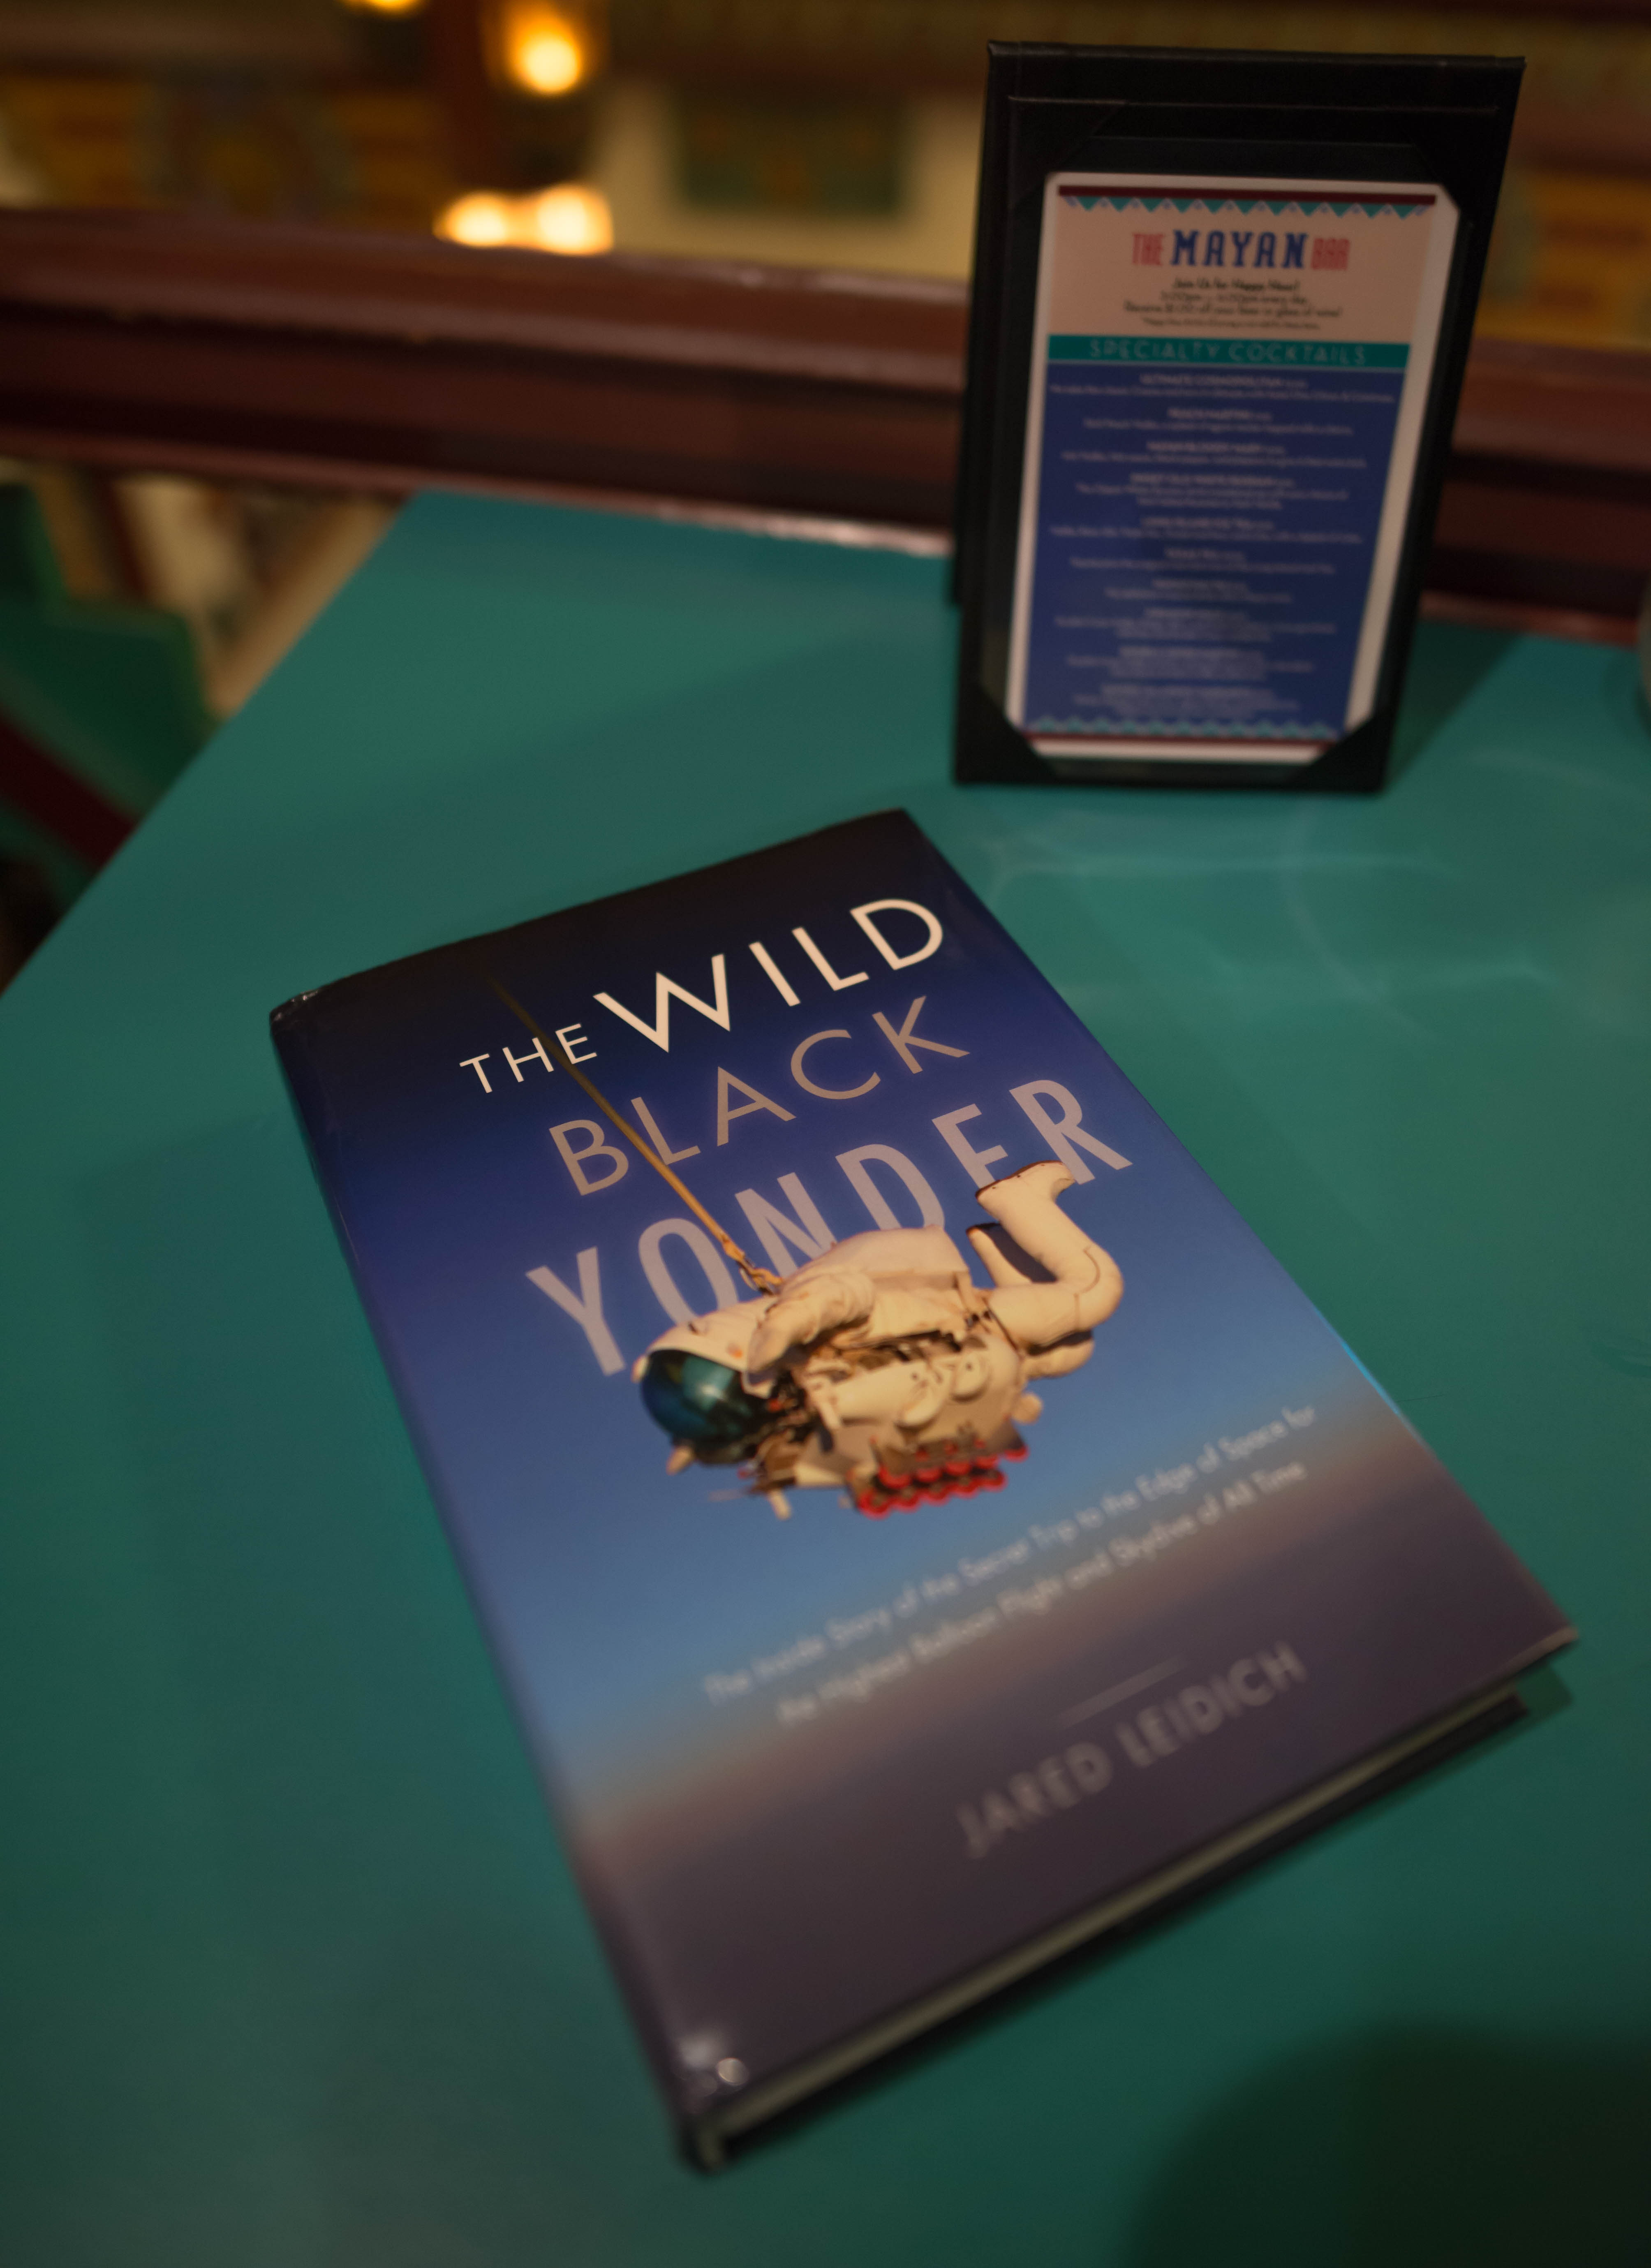 The Wild Black Yonder book launch at The Mayan Theater. Photo by Alden Bonecutter.